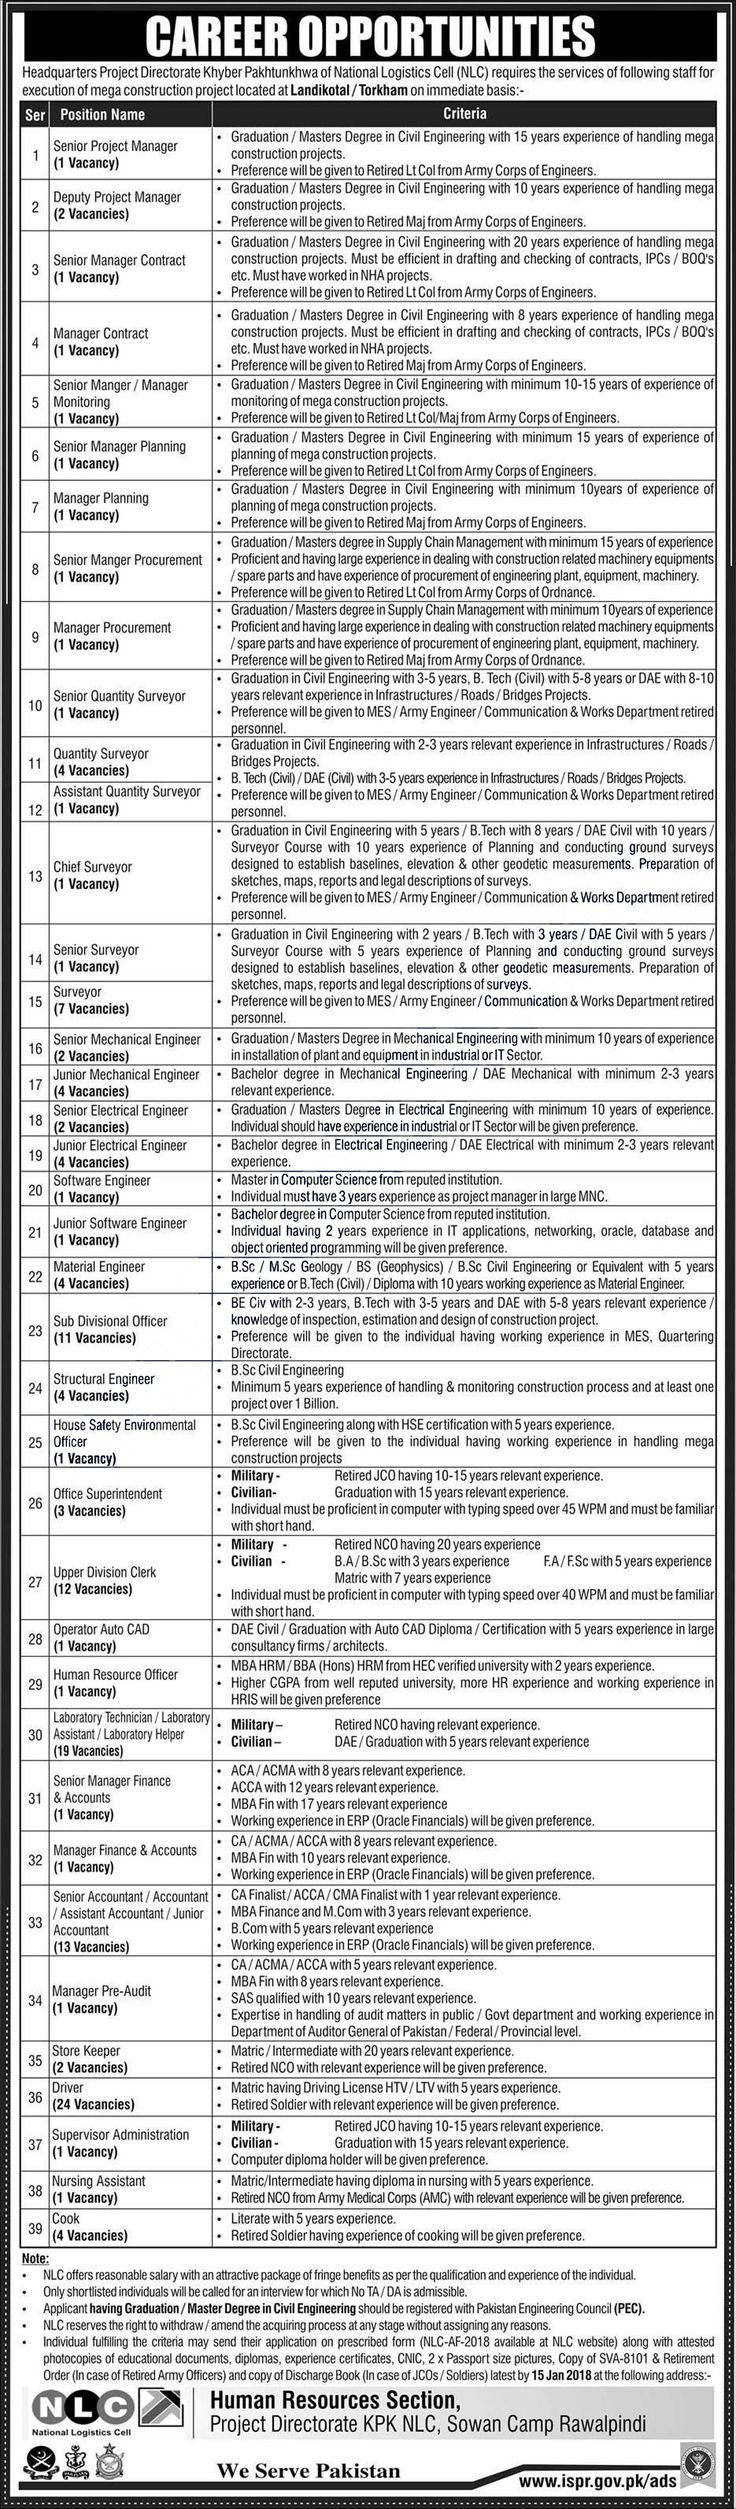 National Logistic Cell NLC Jobs 2017 In Rawalpindi For Managers, Engineers And Surveyors http://www.jobsfanda.com/national-logistic-cell-nlc-jobs-2017-rawalpindi-managers-engineers-surveyors/